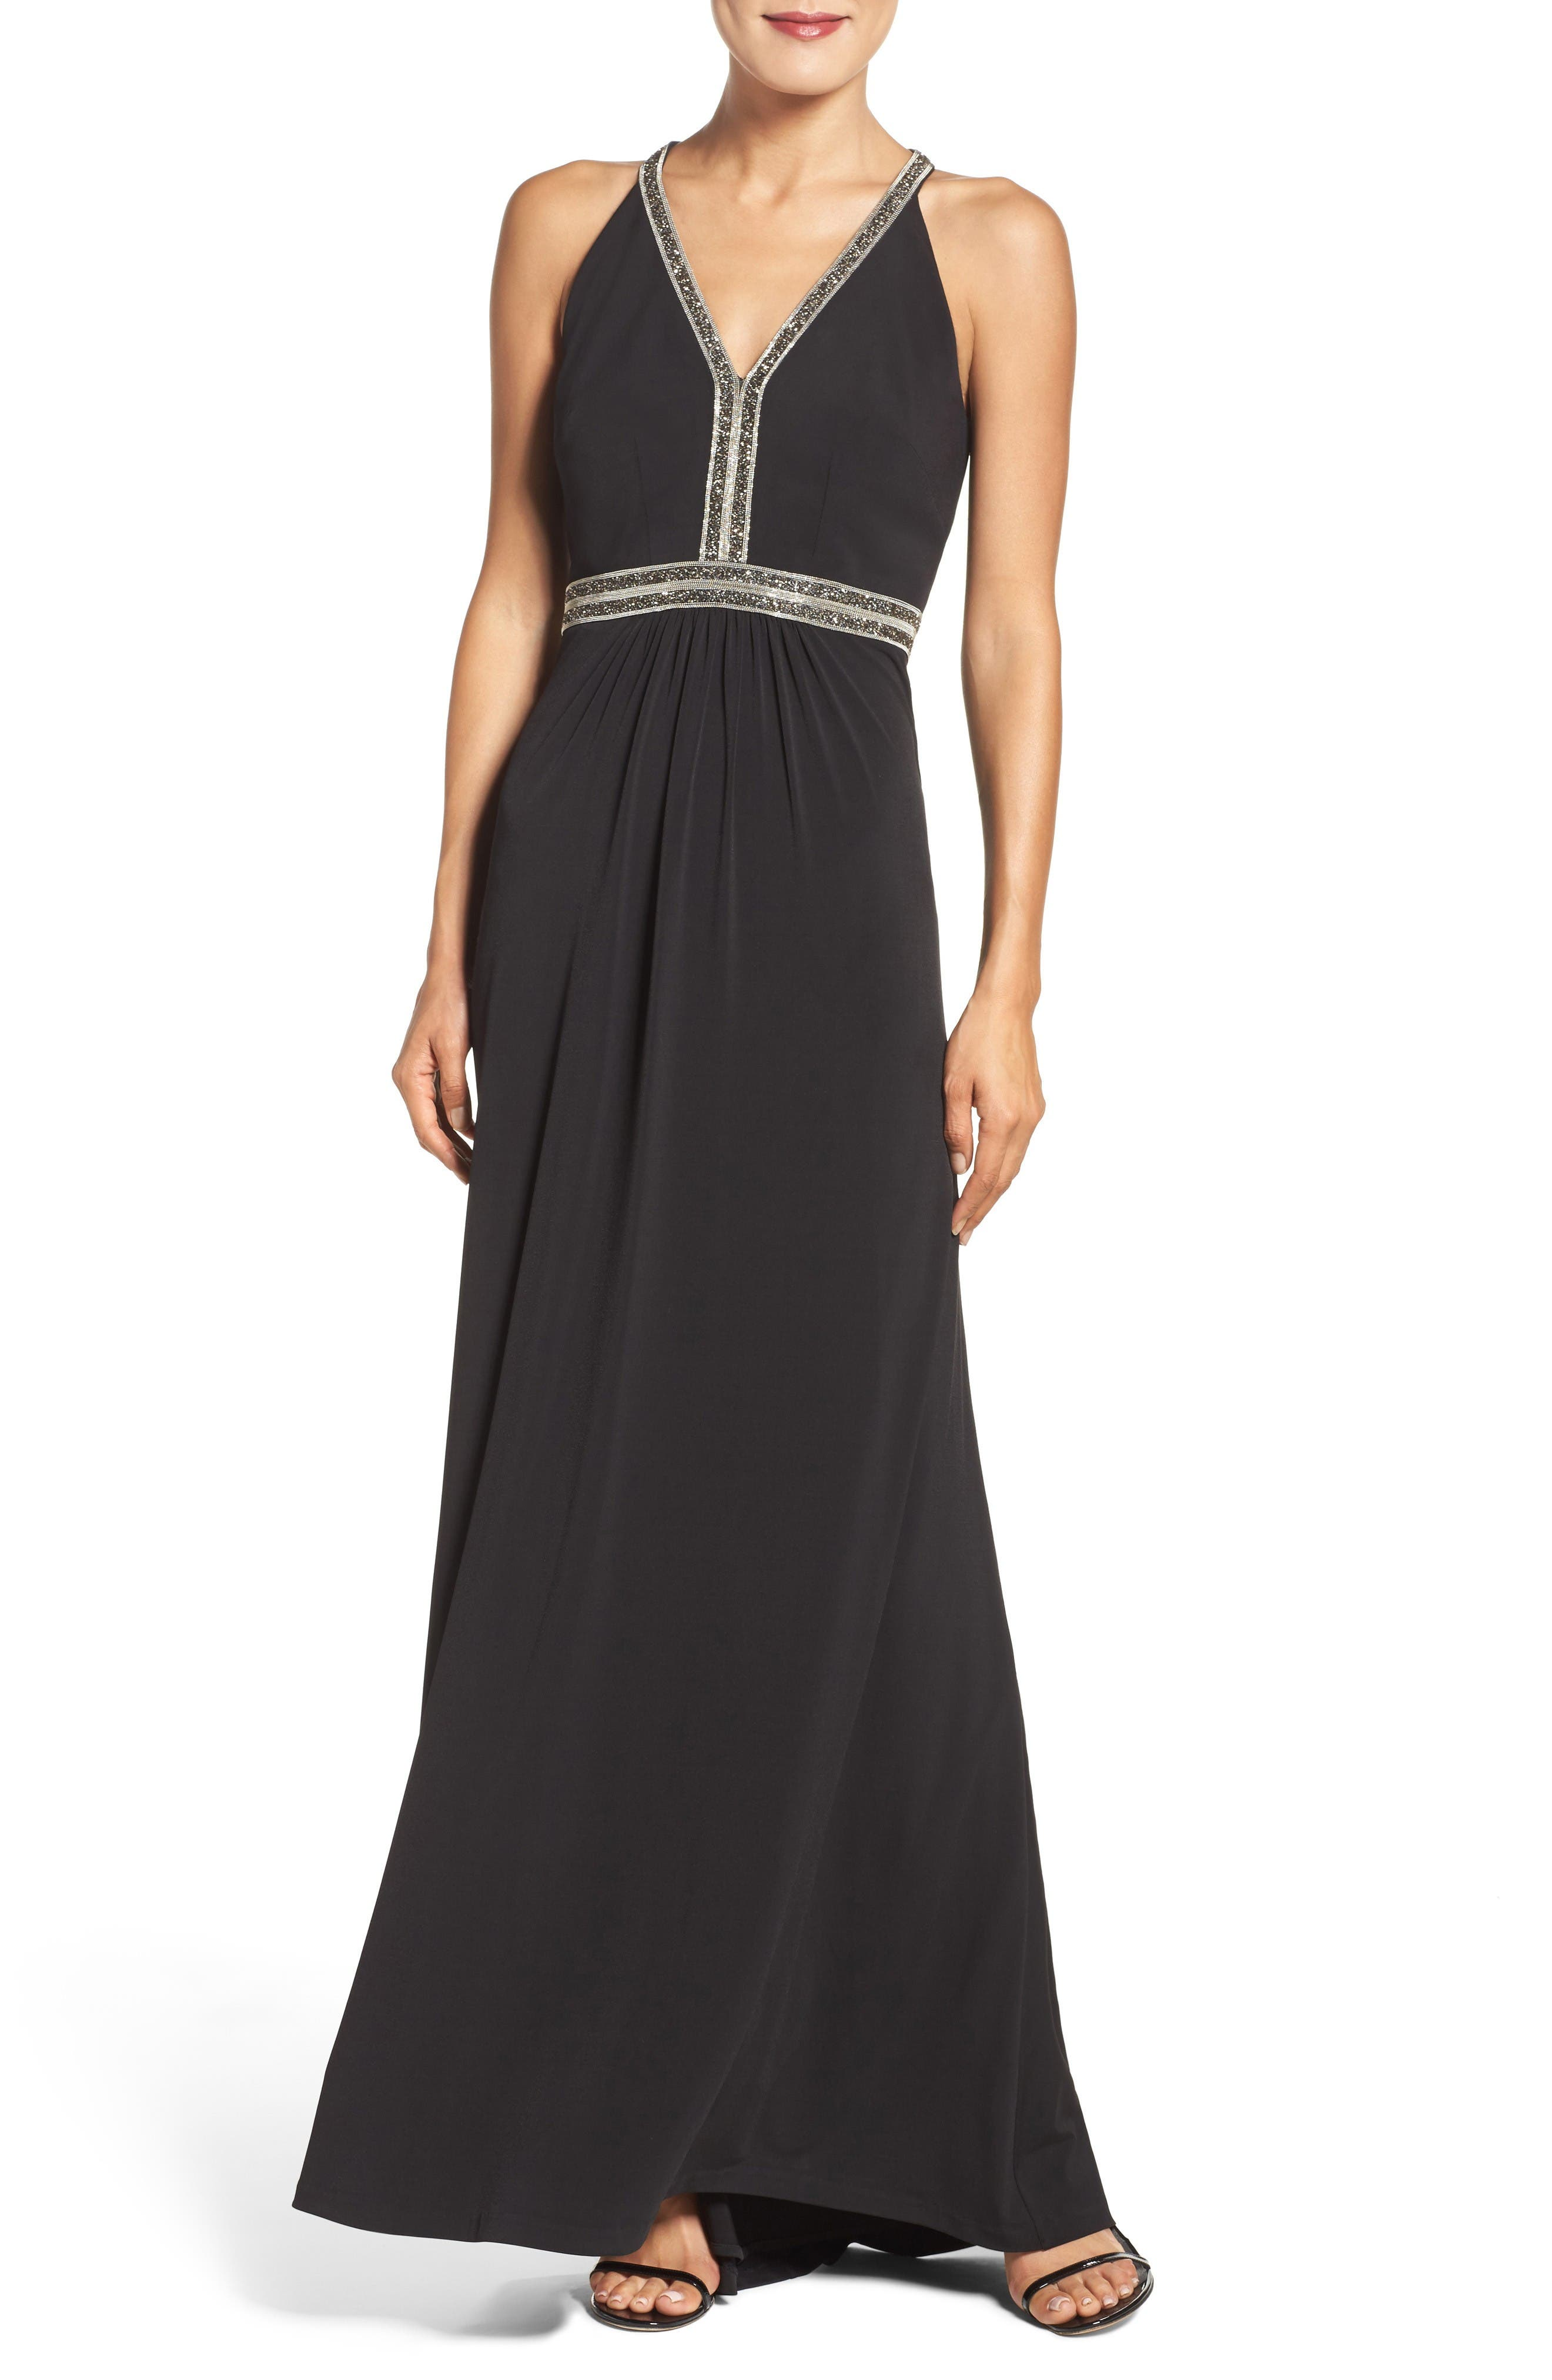 Alternate Image 1 Selected - Vince Camuto Embellished Jersey Gown